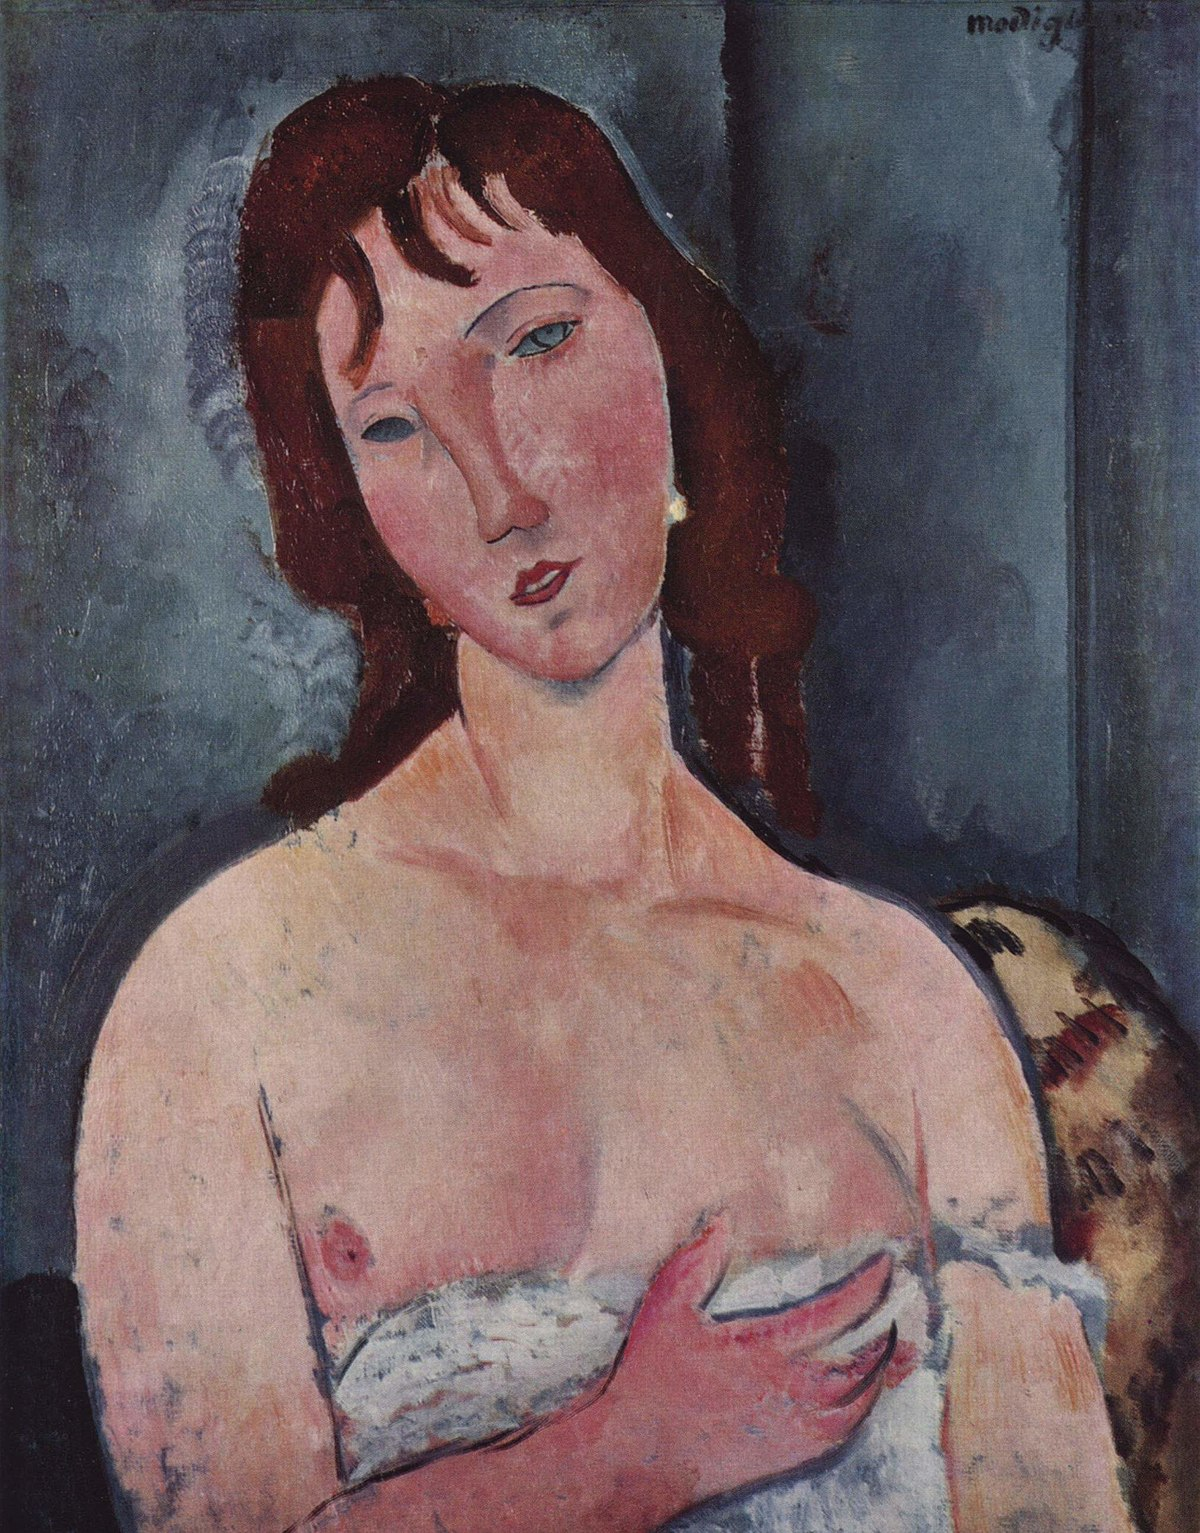 http://upload.wikimedia.org/wikipedia/commons/thumb/7/7a/Amadeo_Modigliani_009.jpg/1200px-Amadeo_Modigliani_009.jpg